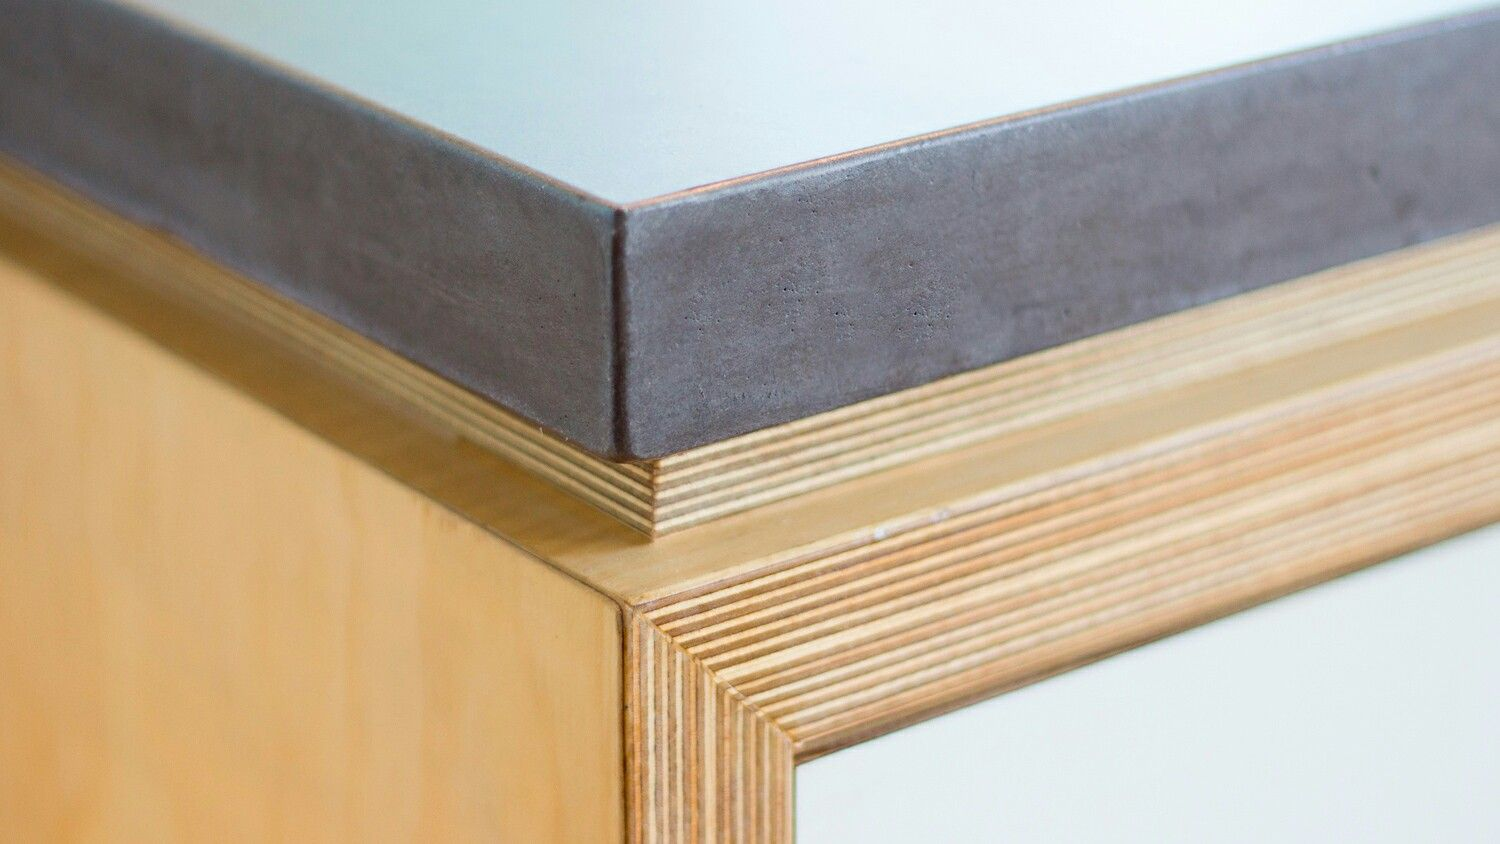 Bench top and joinery